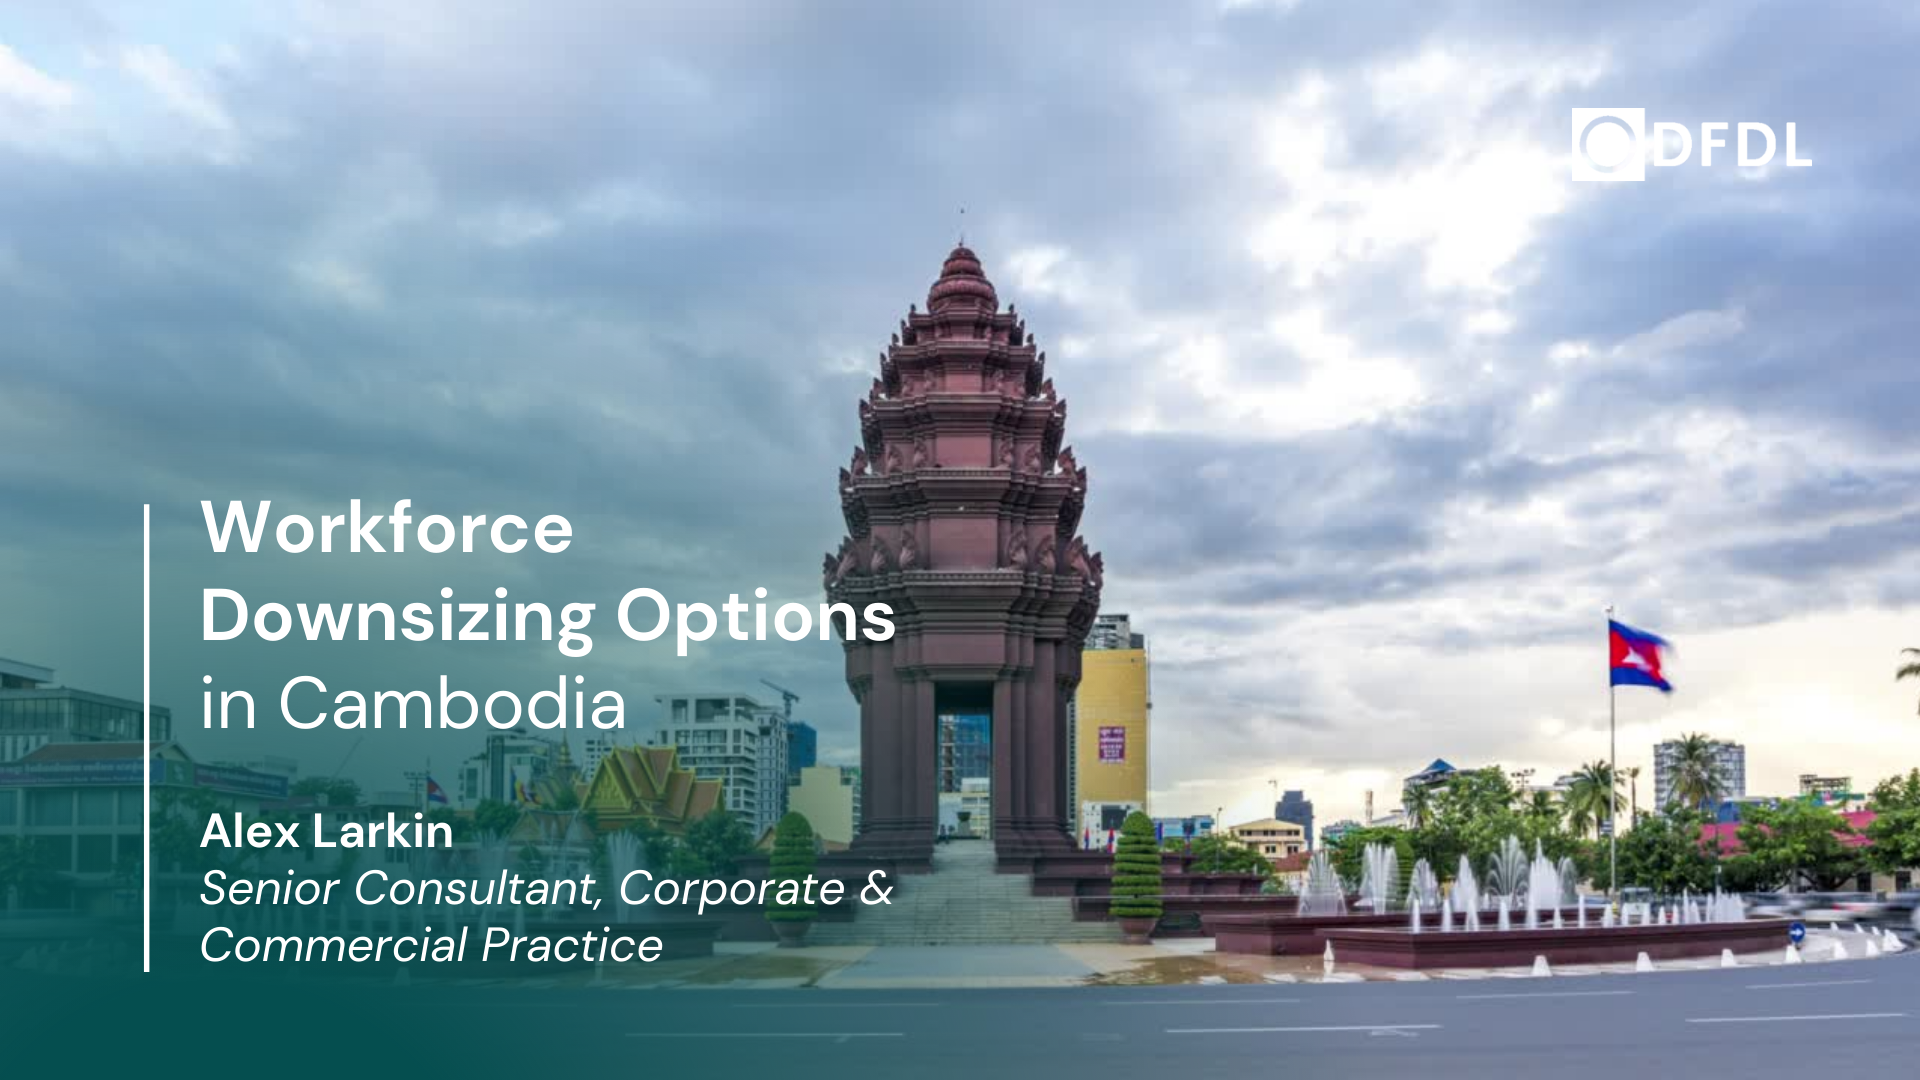 Workforce Downsizing Options in Cambodia